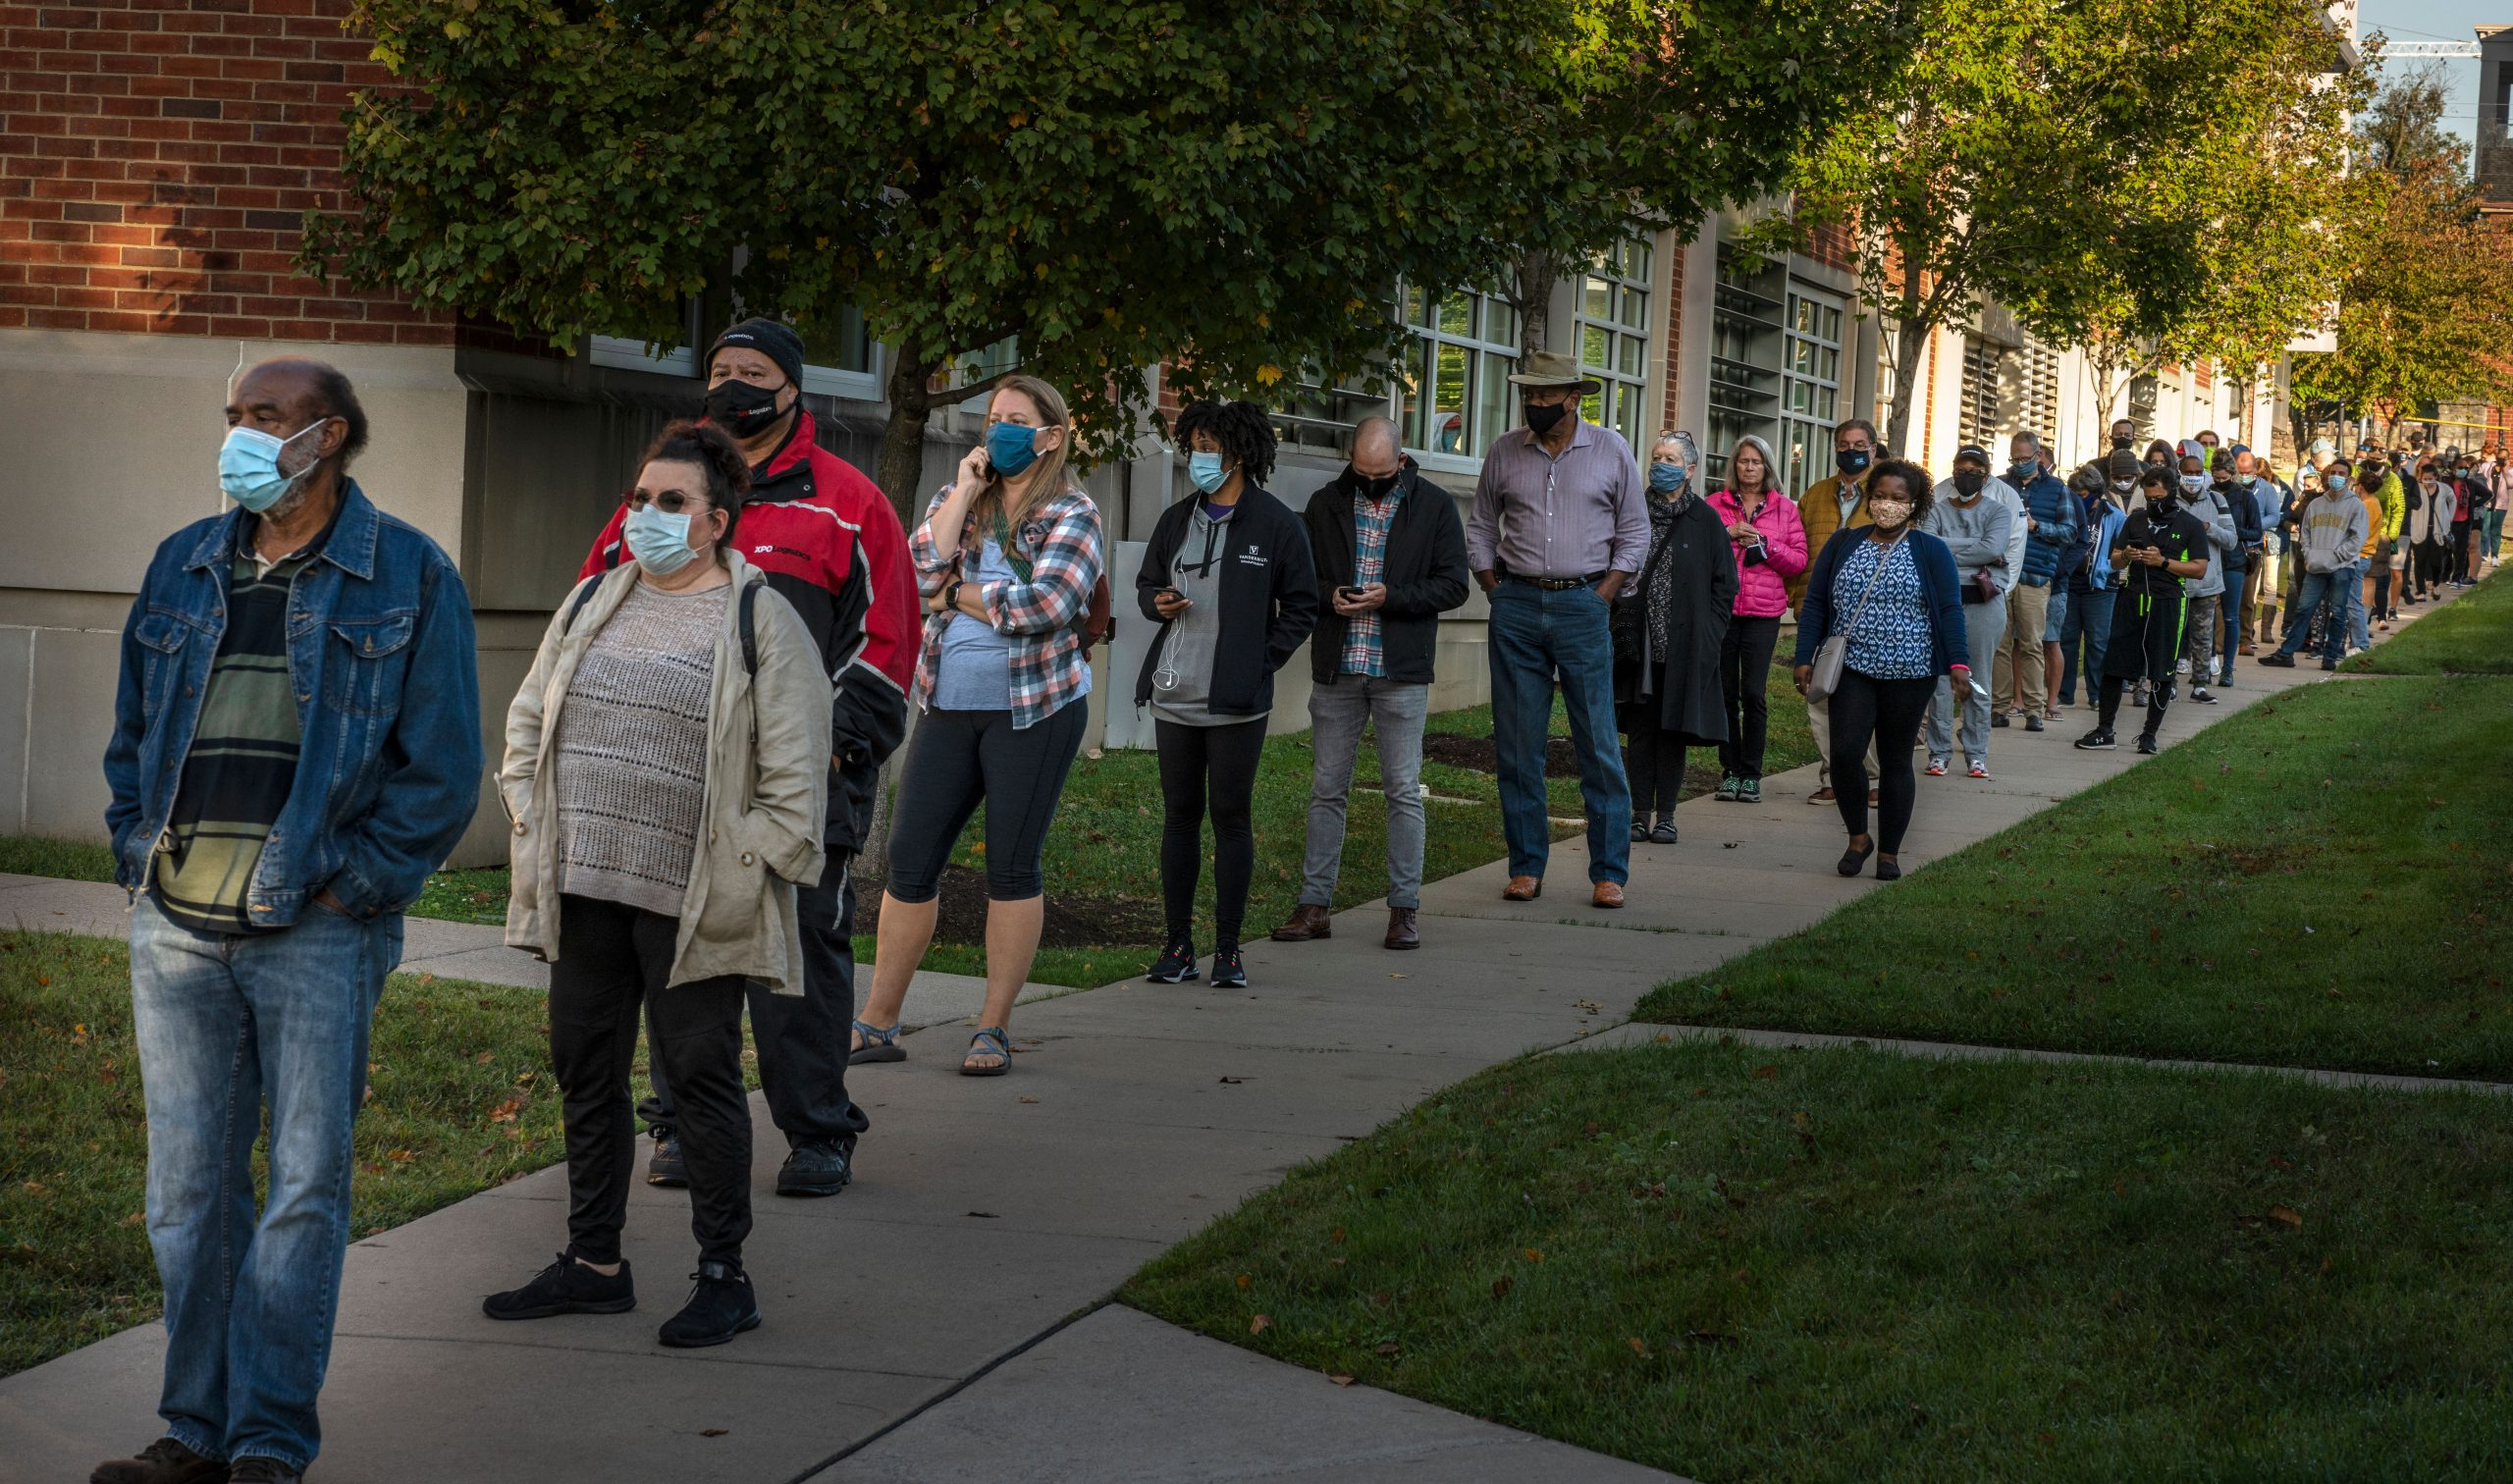 A large group of people wait in line to early vote at the Howard Building before Polls opened at 8:00am.(Photo: John Partipilo)